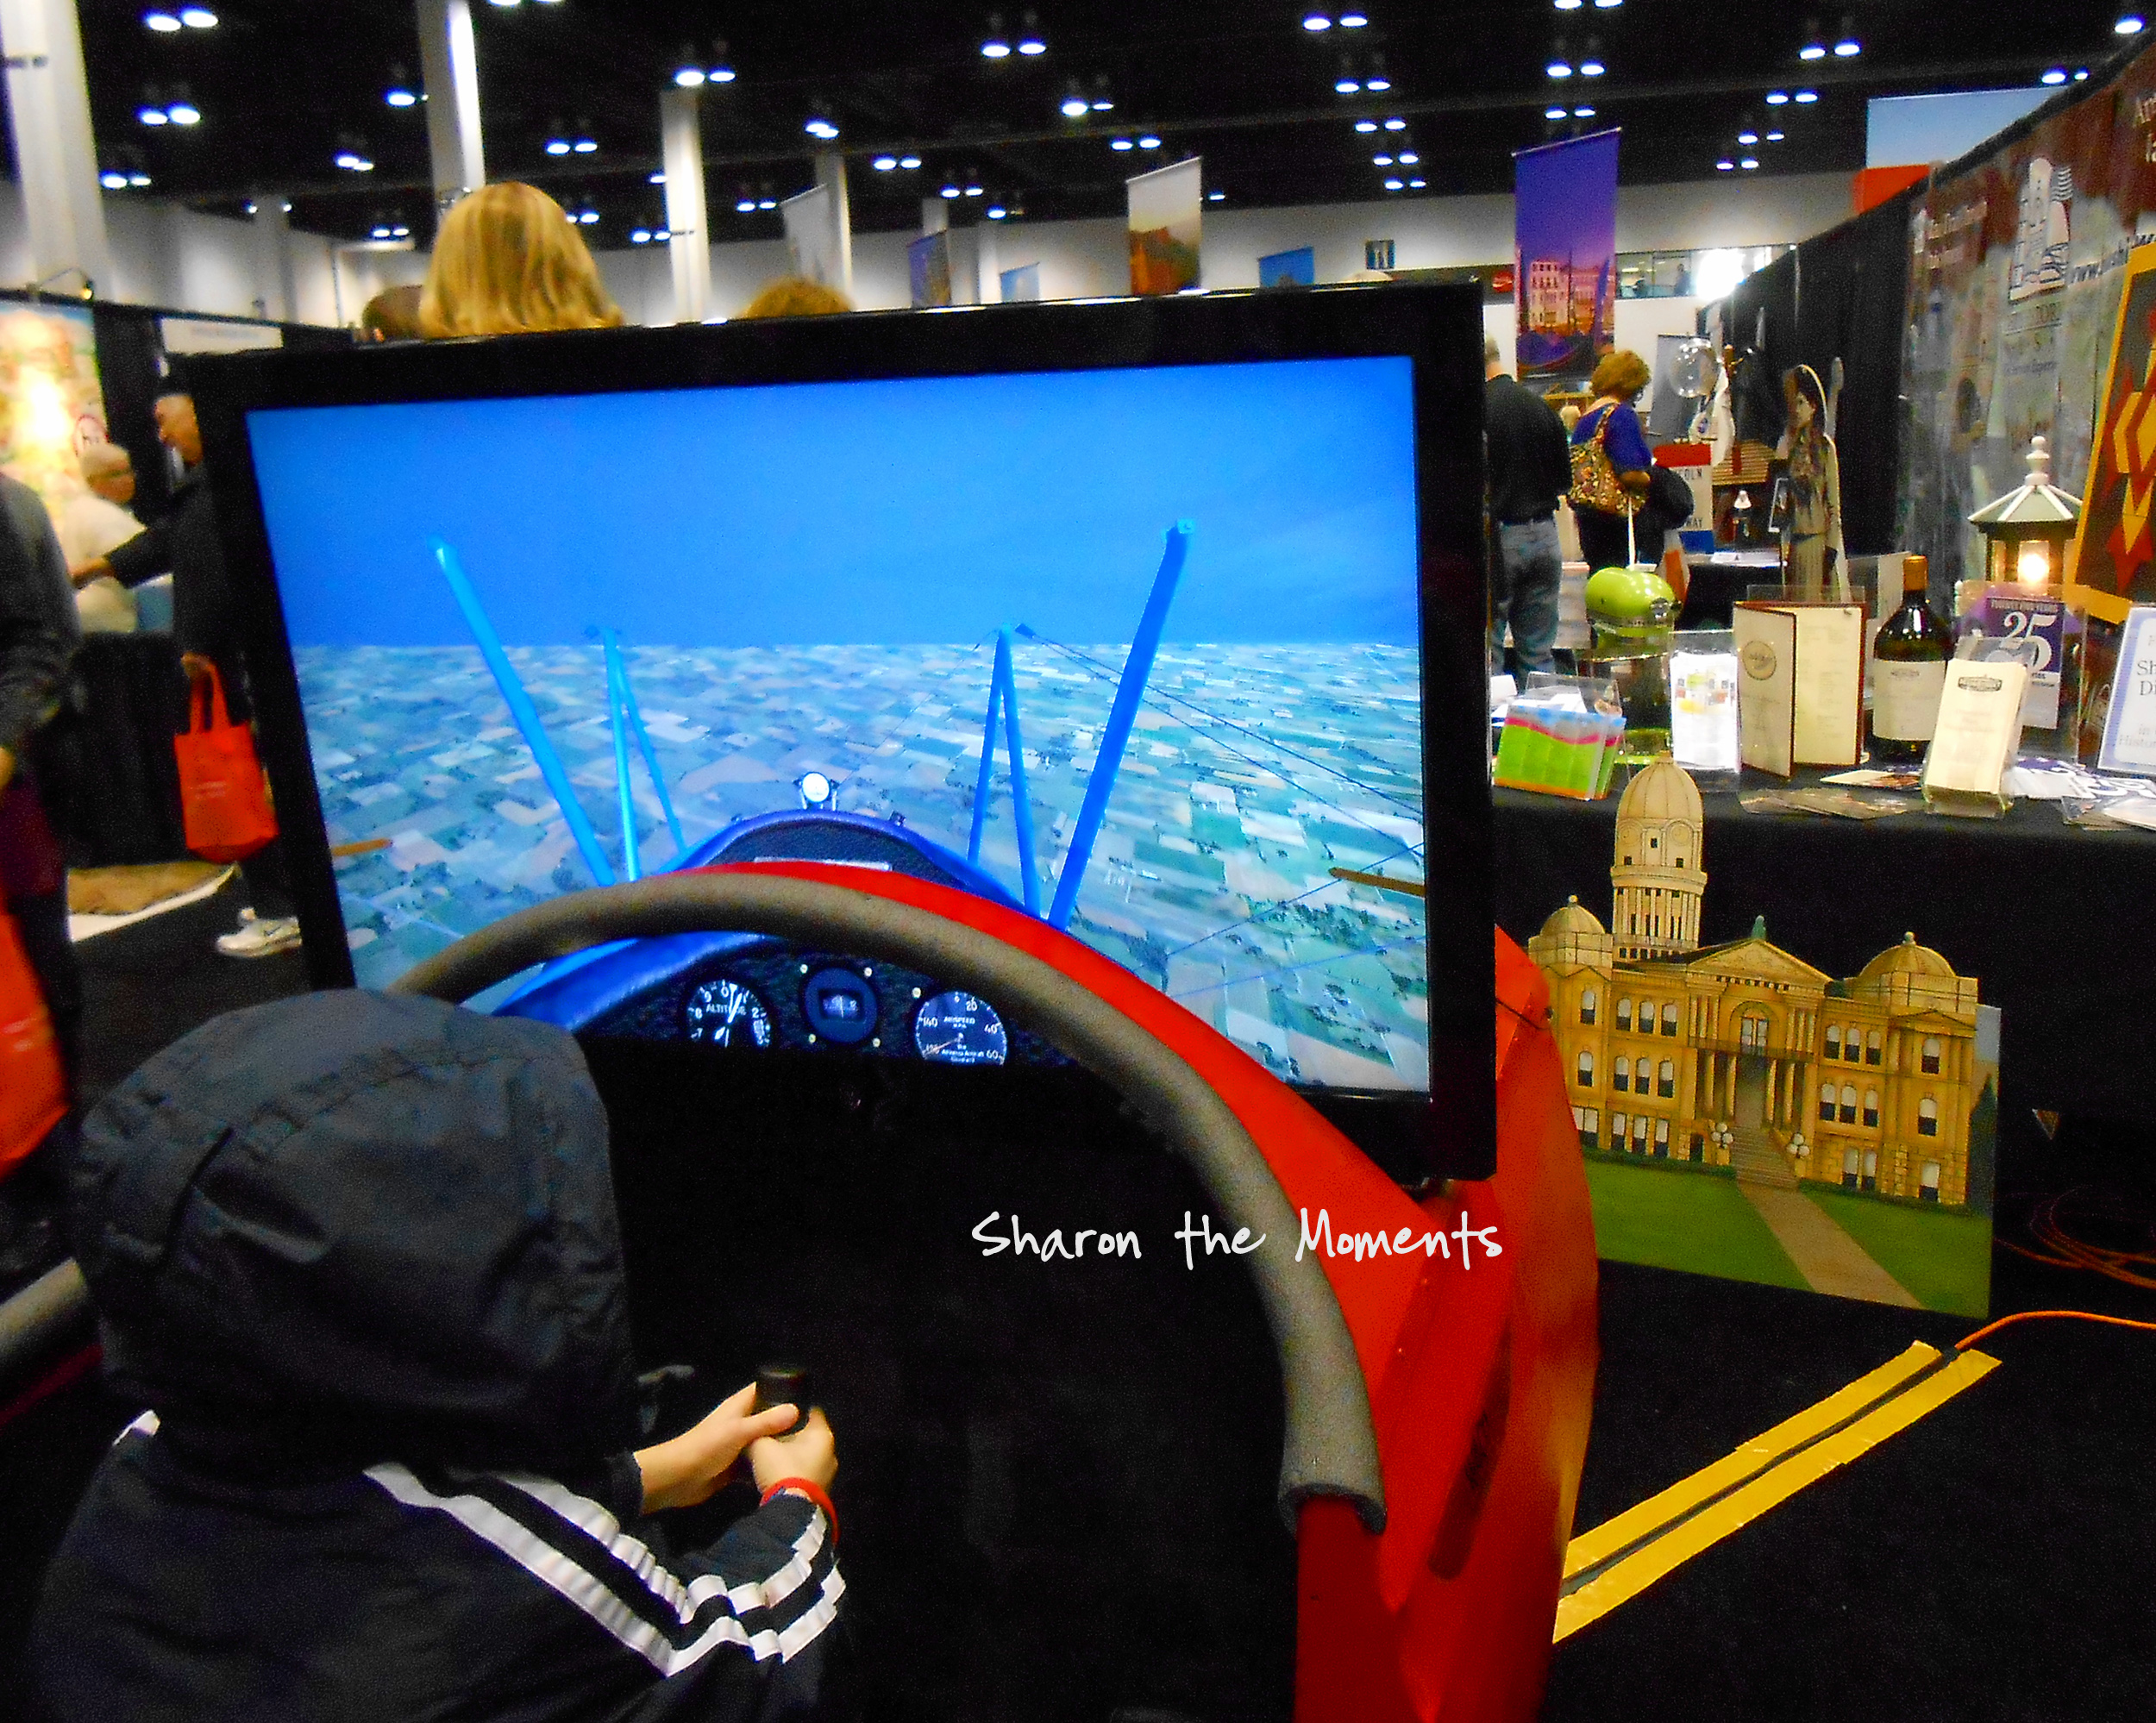 The AAA Vacation & Travel Expo Waco Air Musuem|Sharon the Moments blog